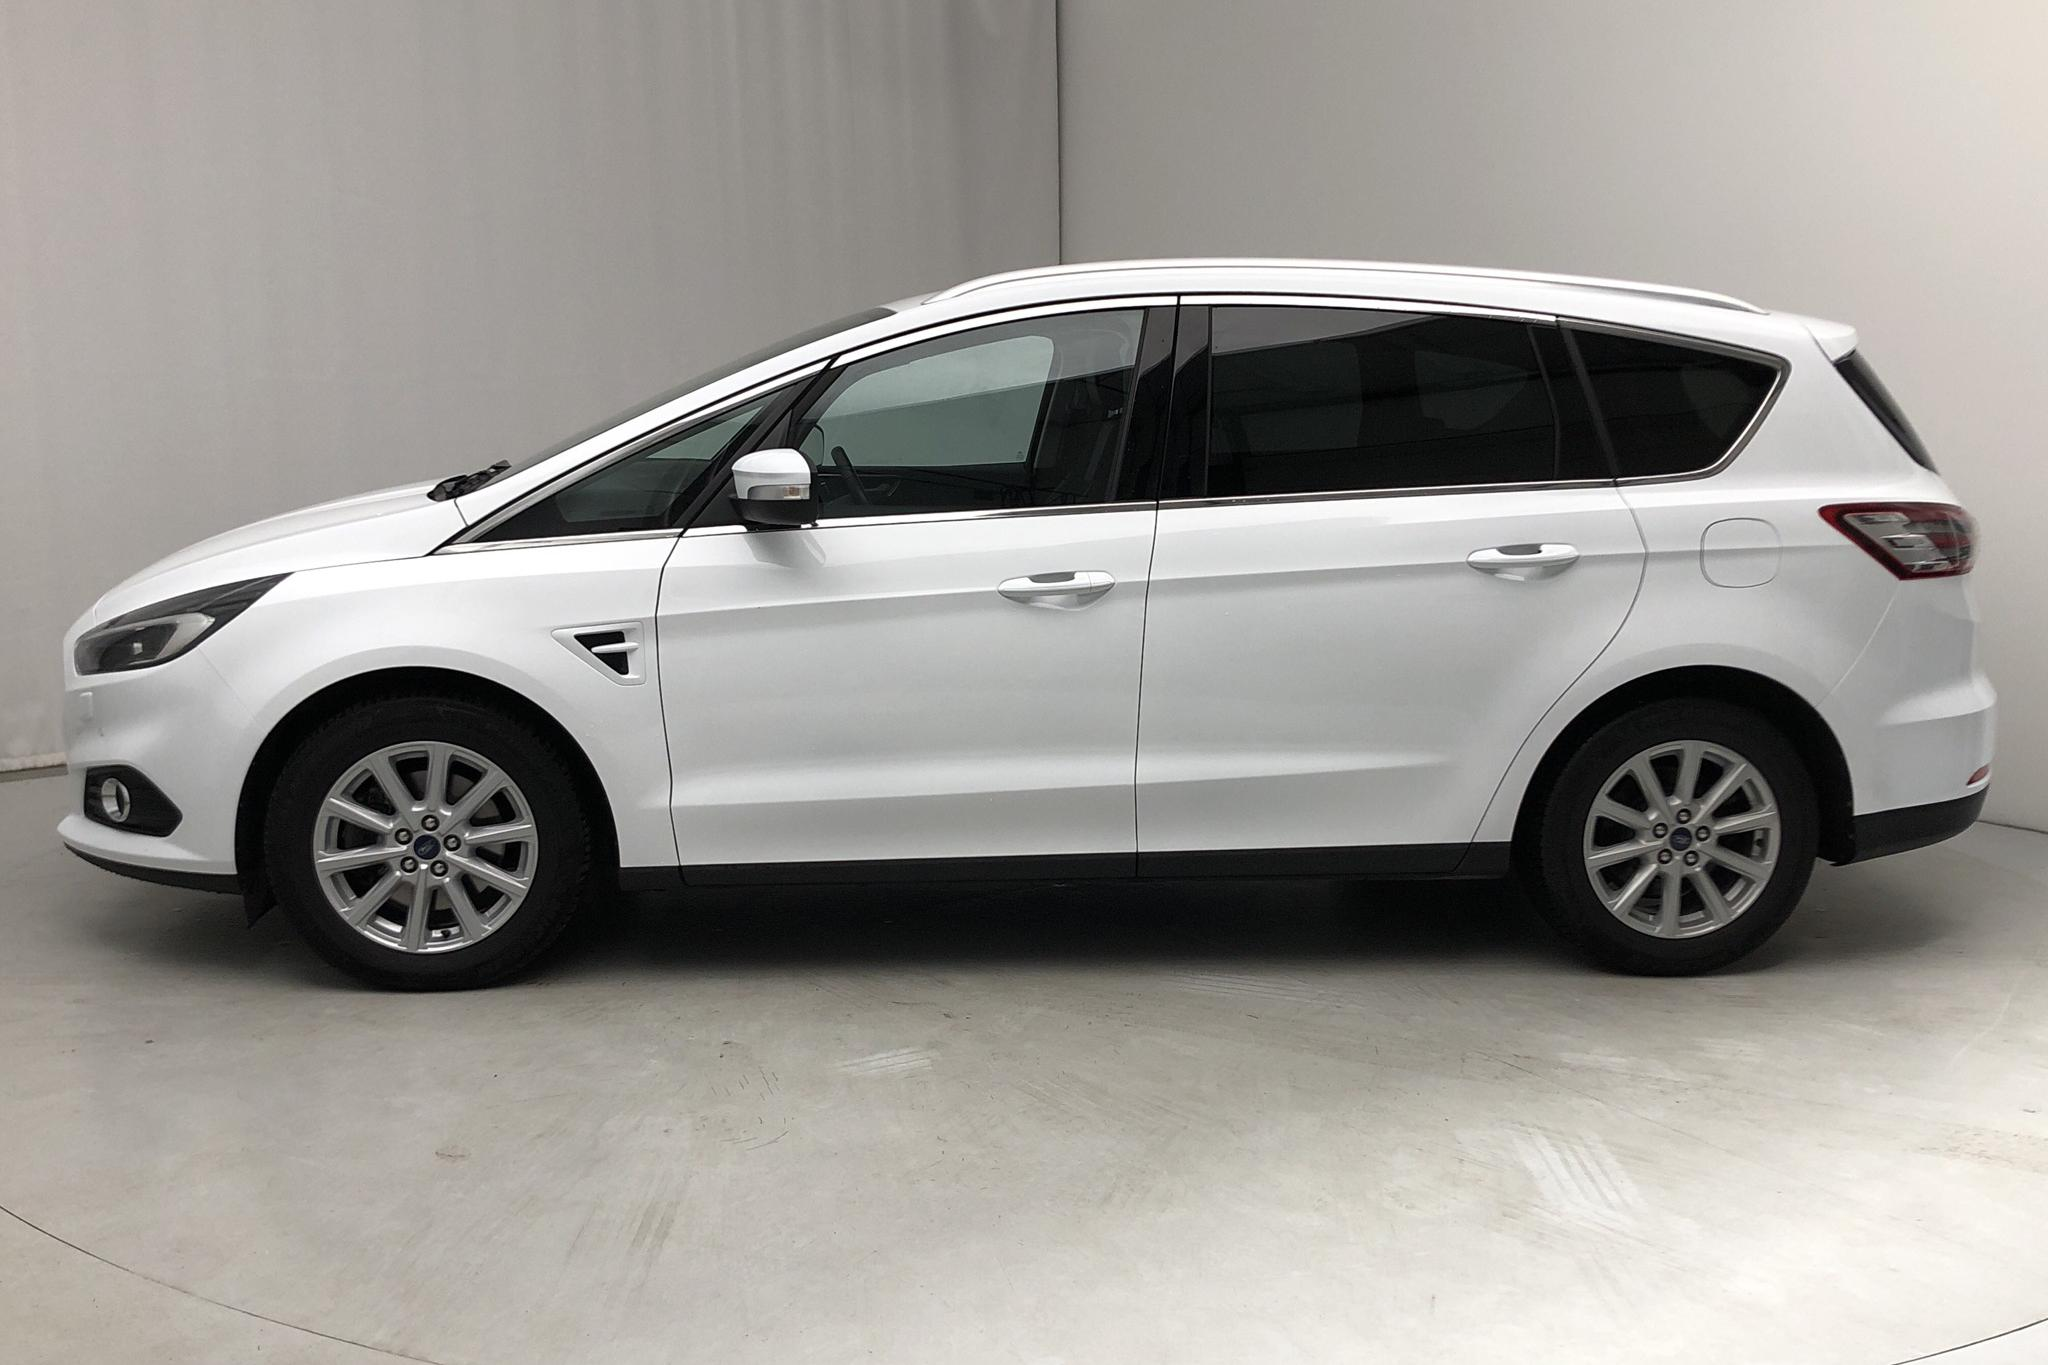 Ford S-MAX 2.0 TDCi (150hk) - 0 km - Automatic - white - 2018